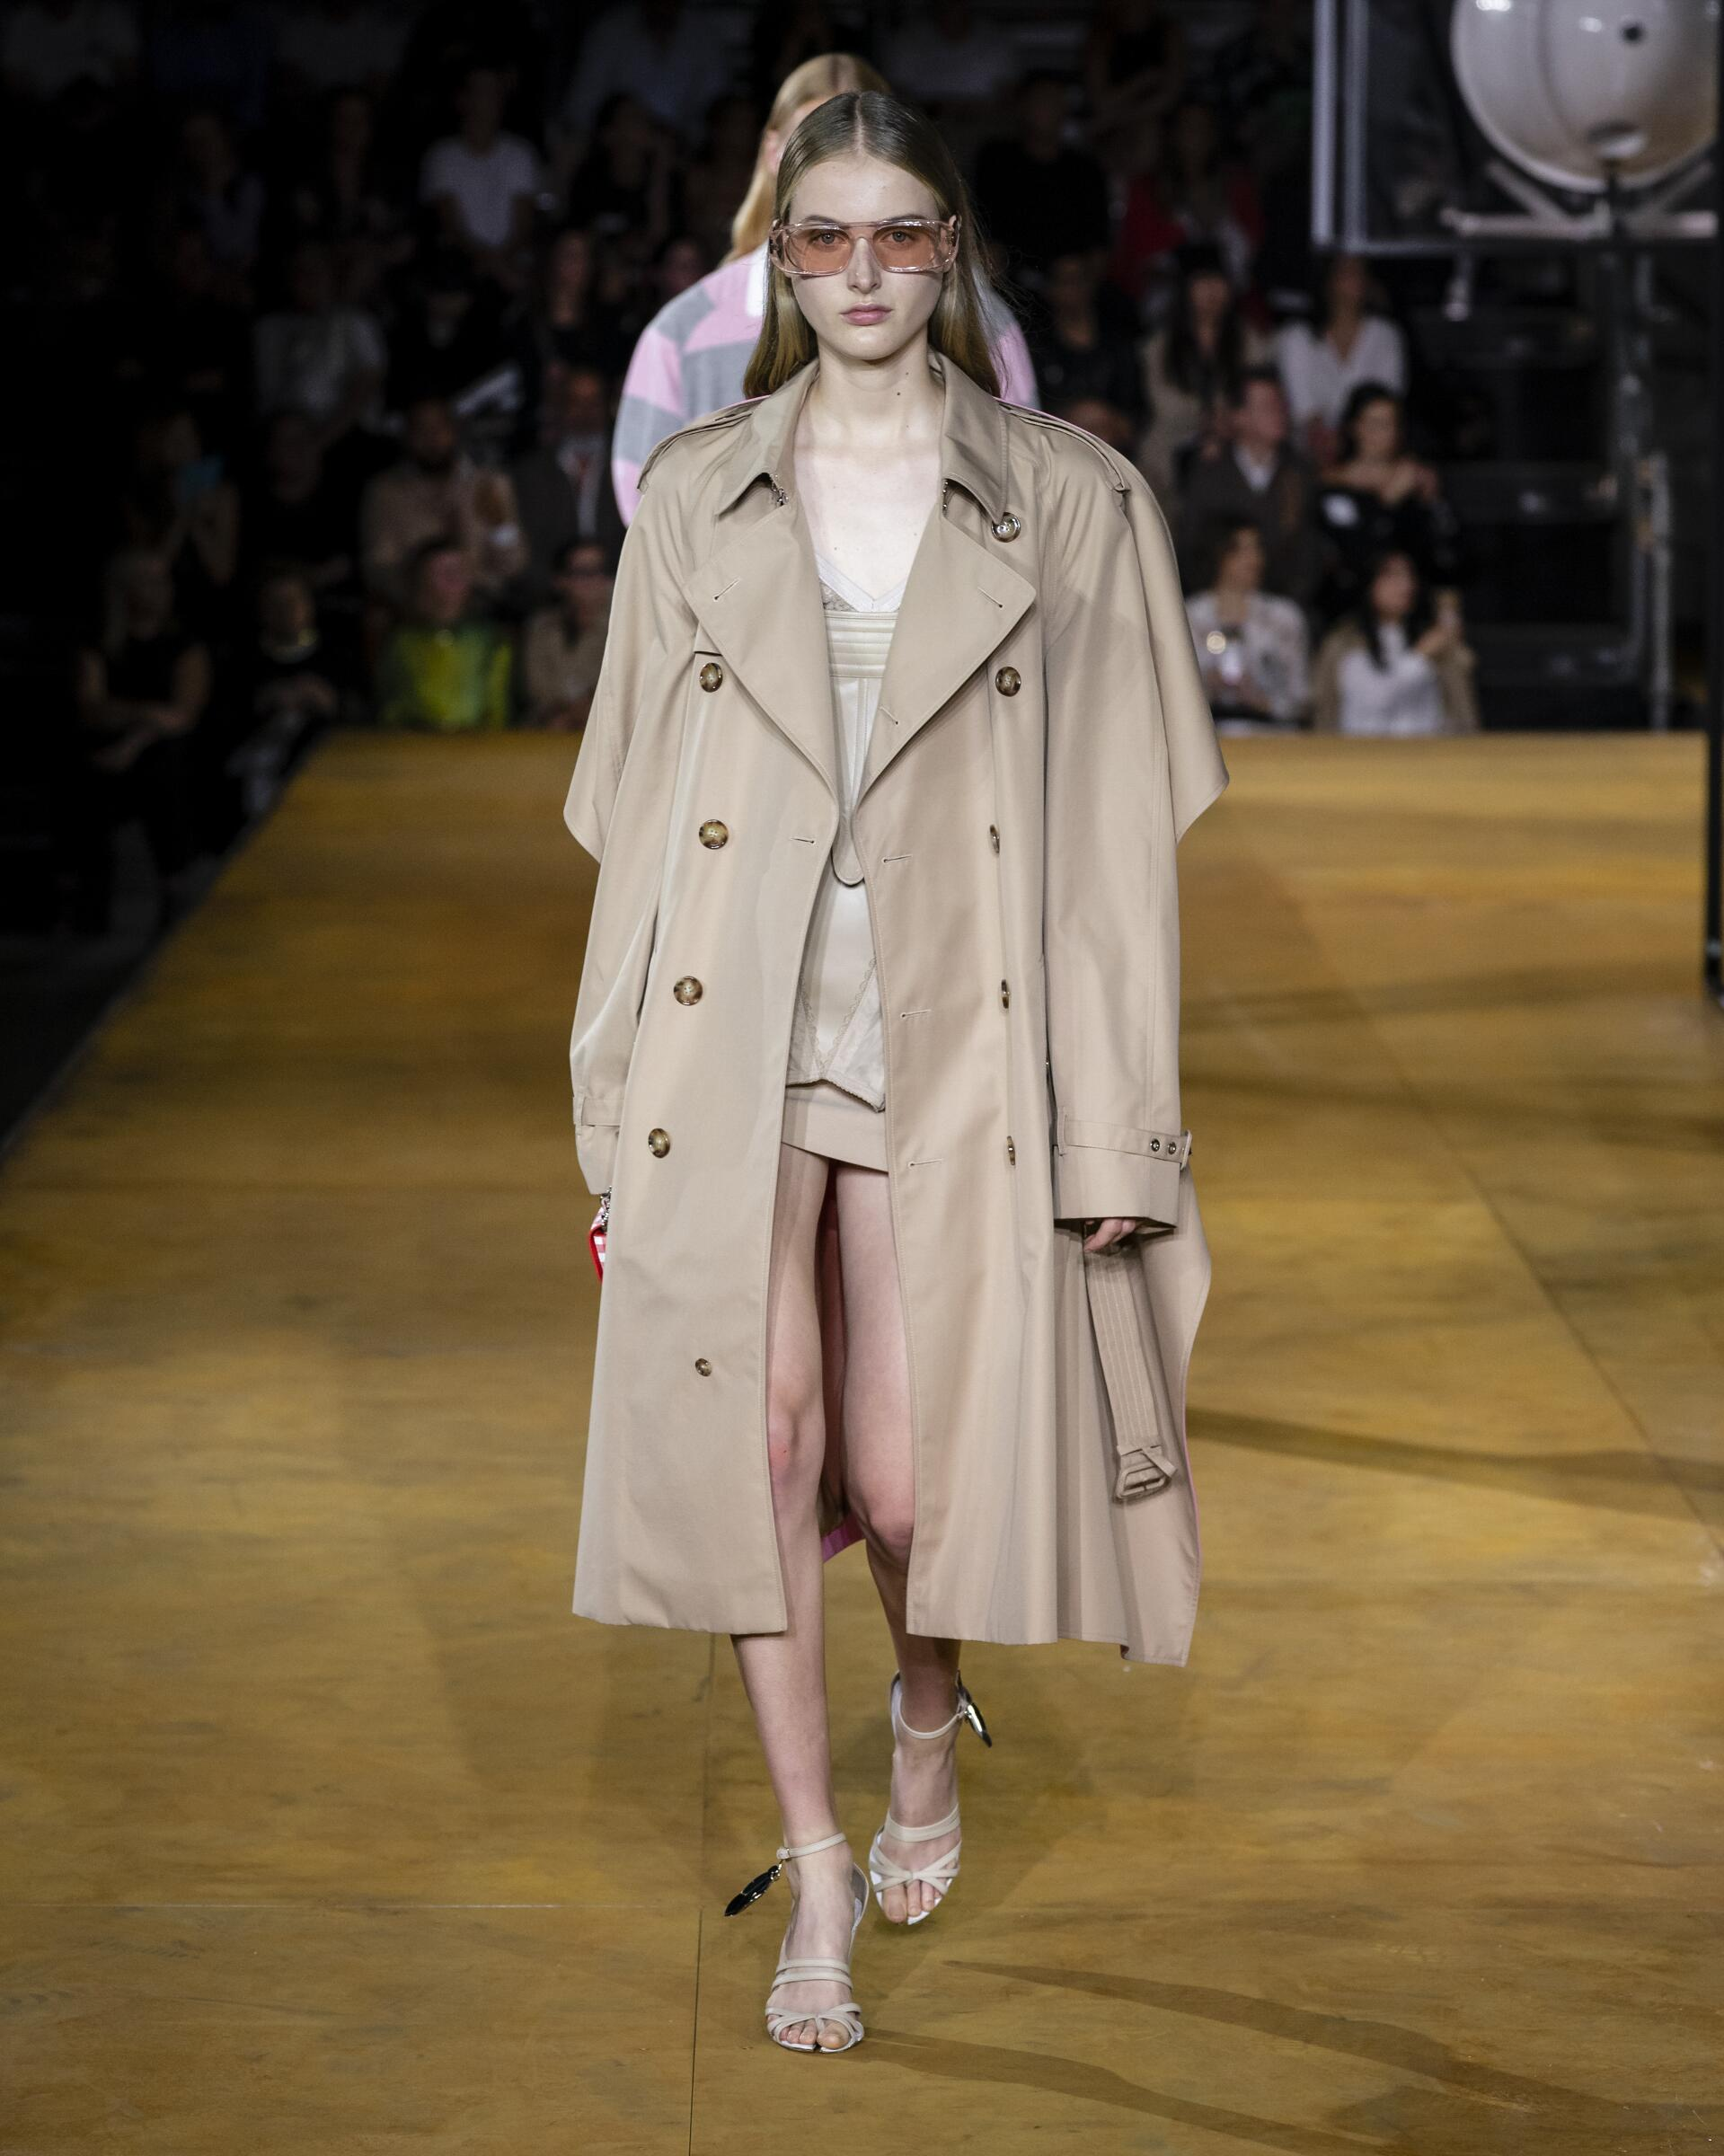 Burberry Womenswear Collection Trends SS